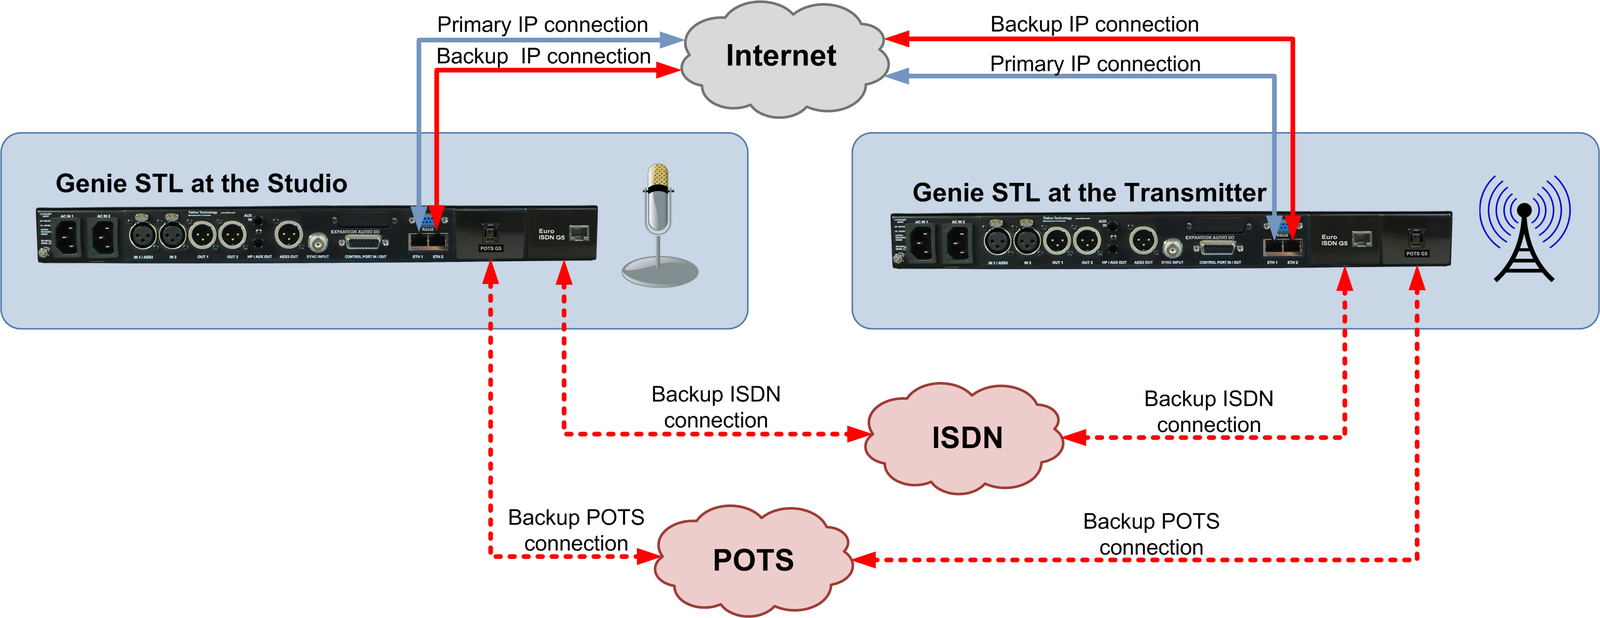 1113_Genie_STL_to_Genie_STL_with_ISDN_and_POTS_backup_v1_20140623